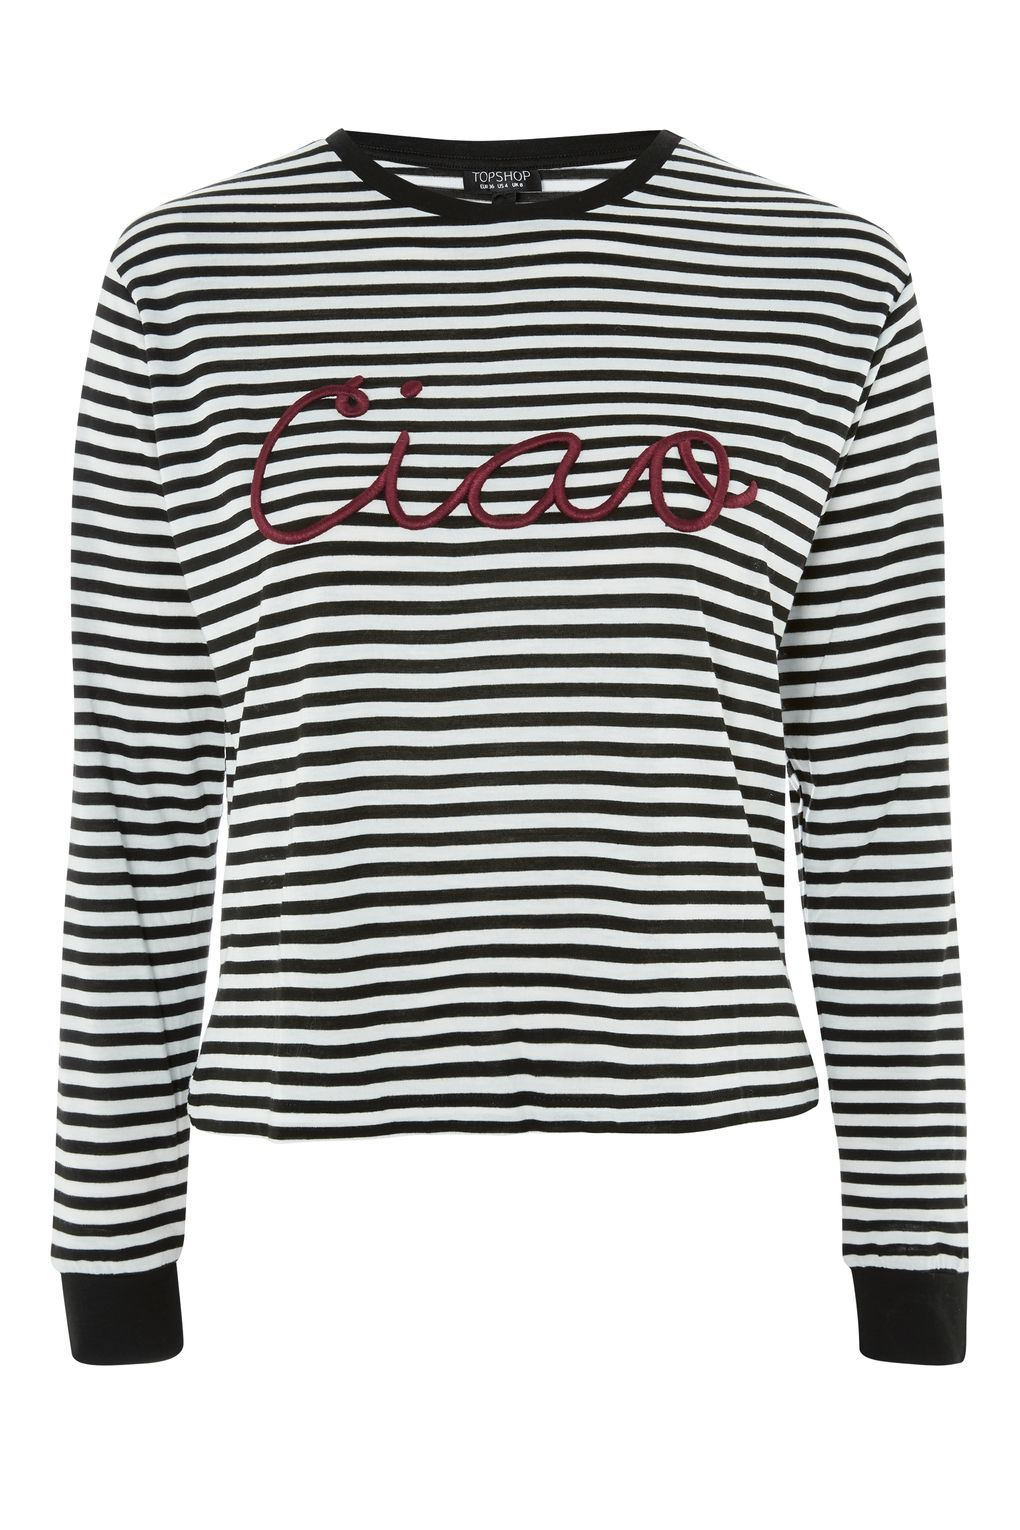 e4480dc3 Ciao' Embroidered Slogan Striped T-Shirt | I want never gets ...